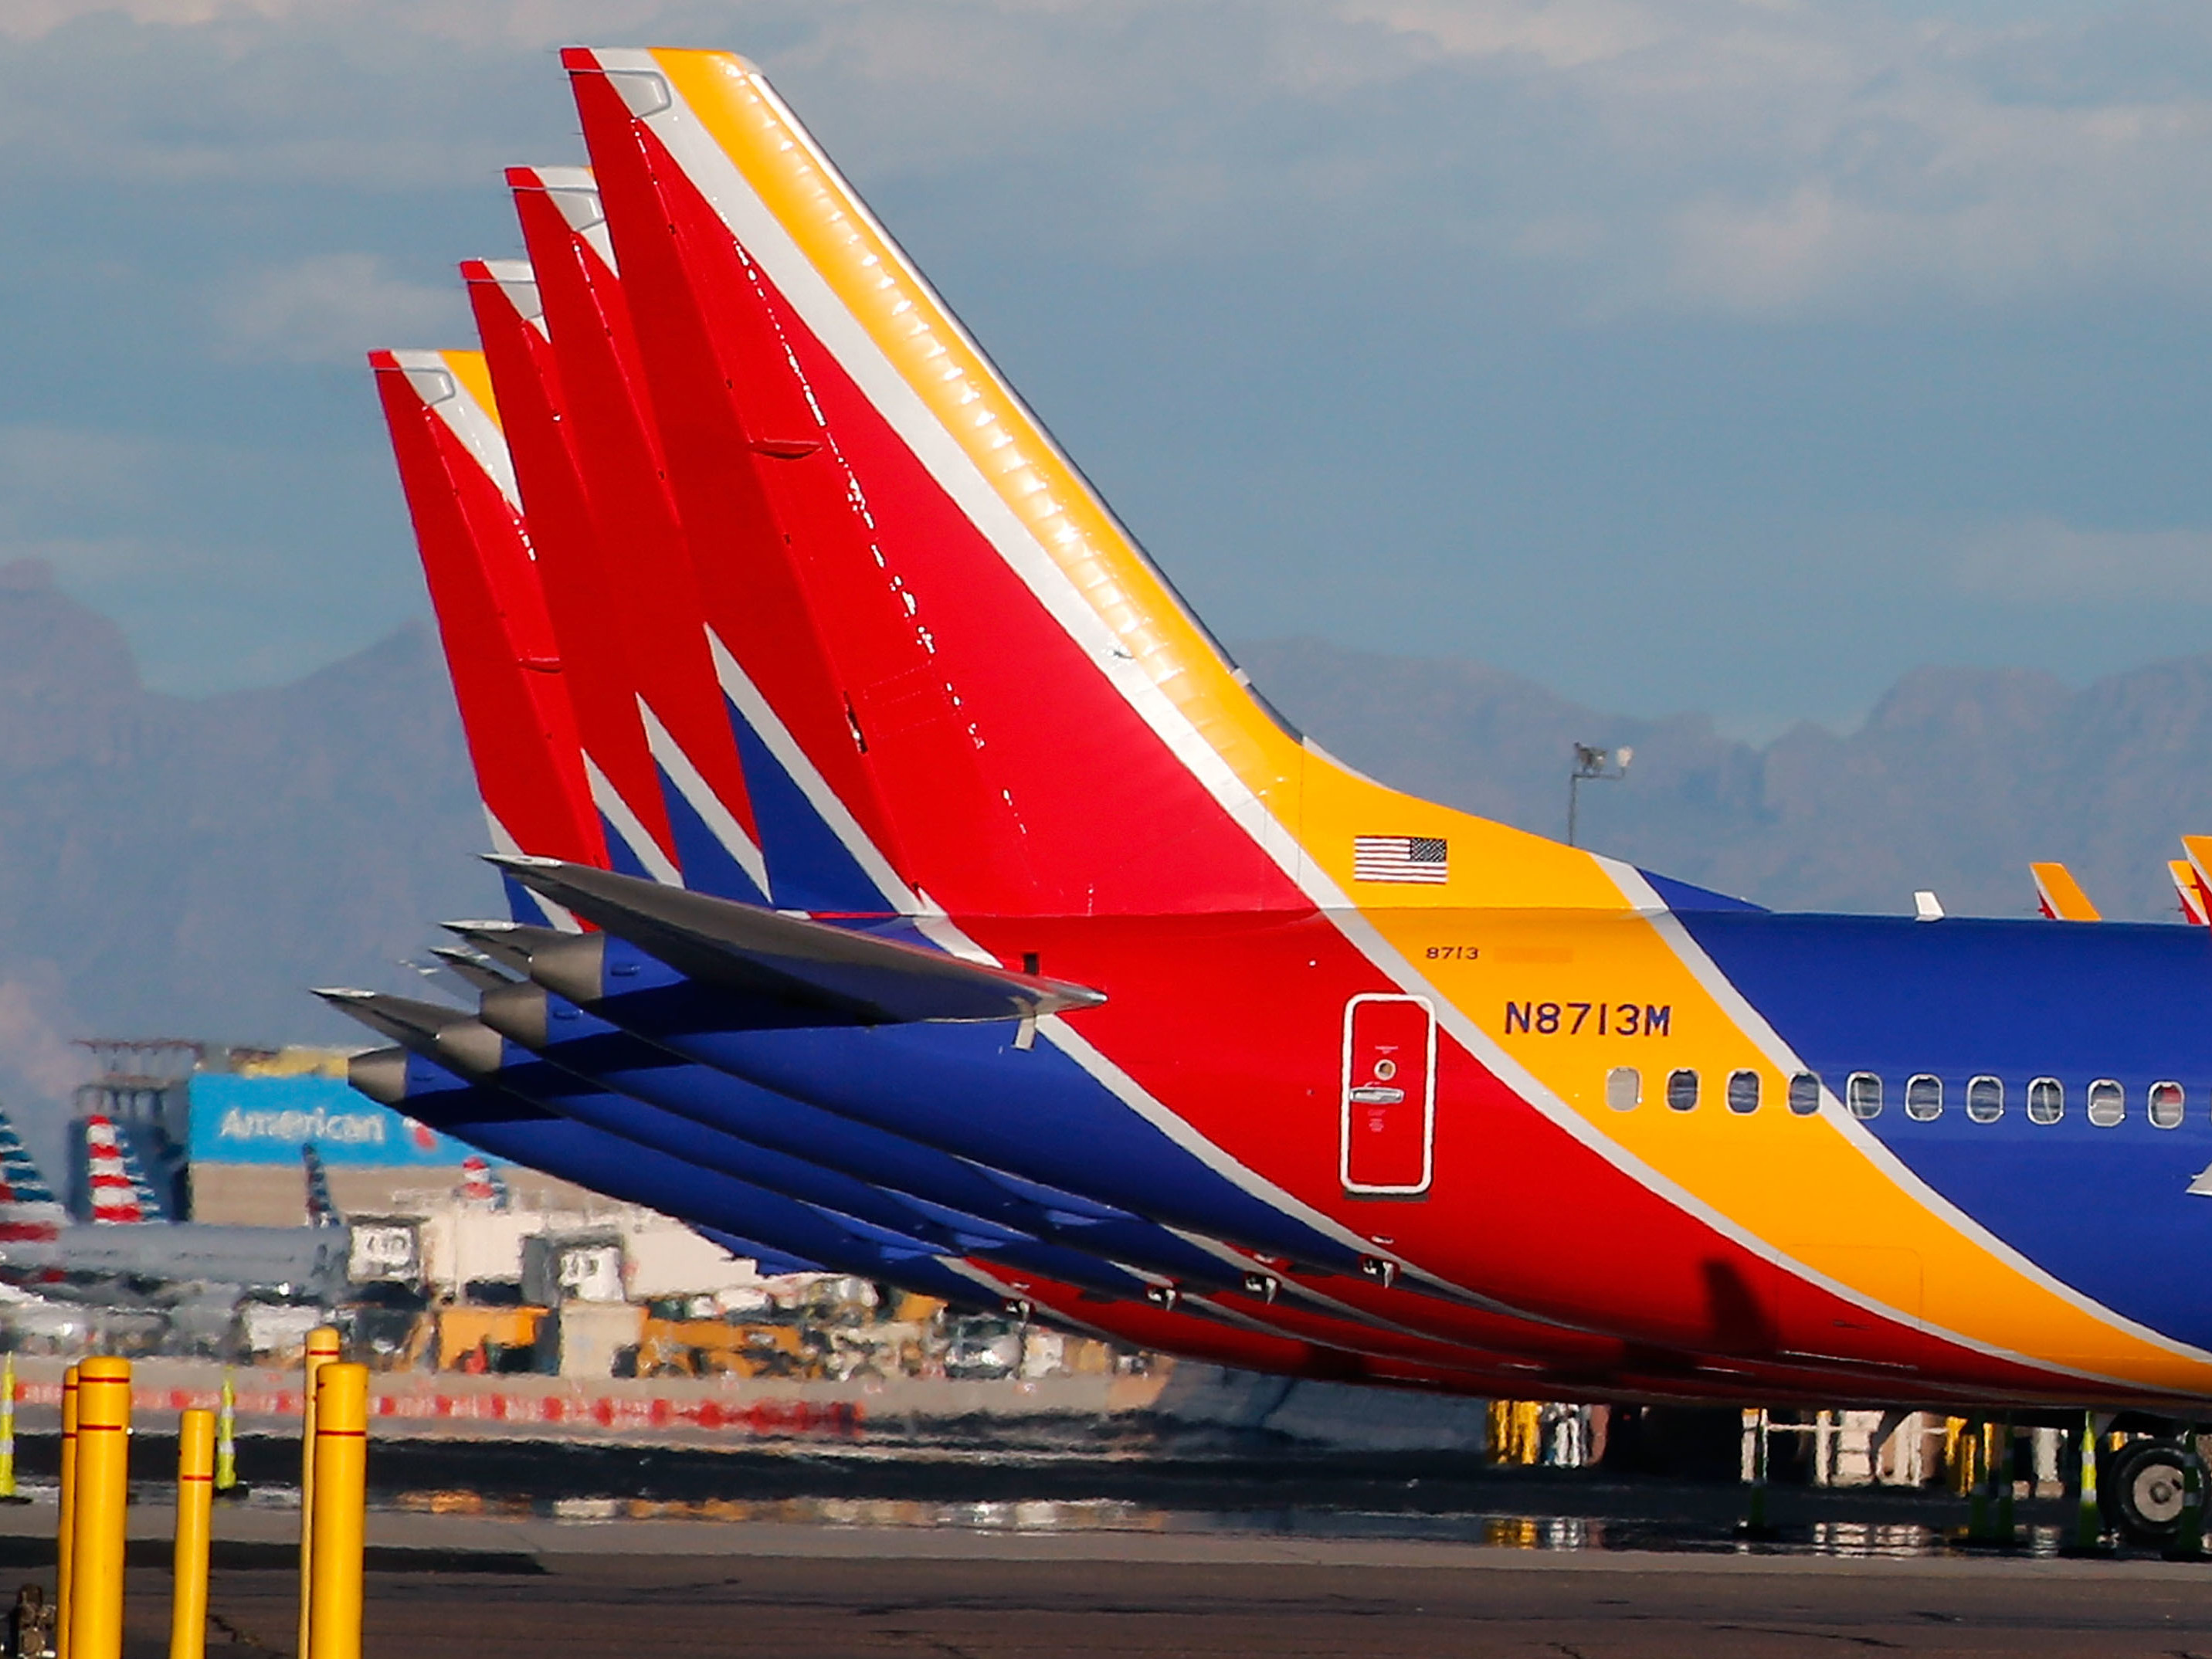 FAA Finds New Problem With 737 Max Jets, Delaying Their Return To Flight